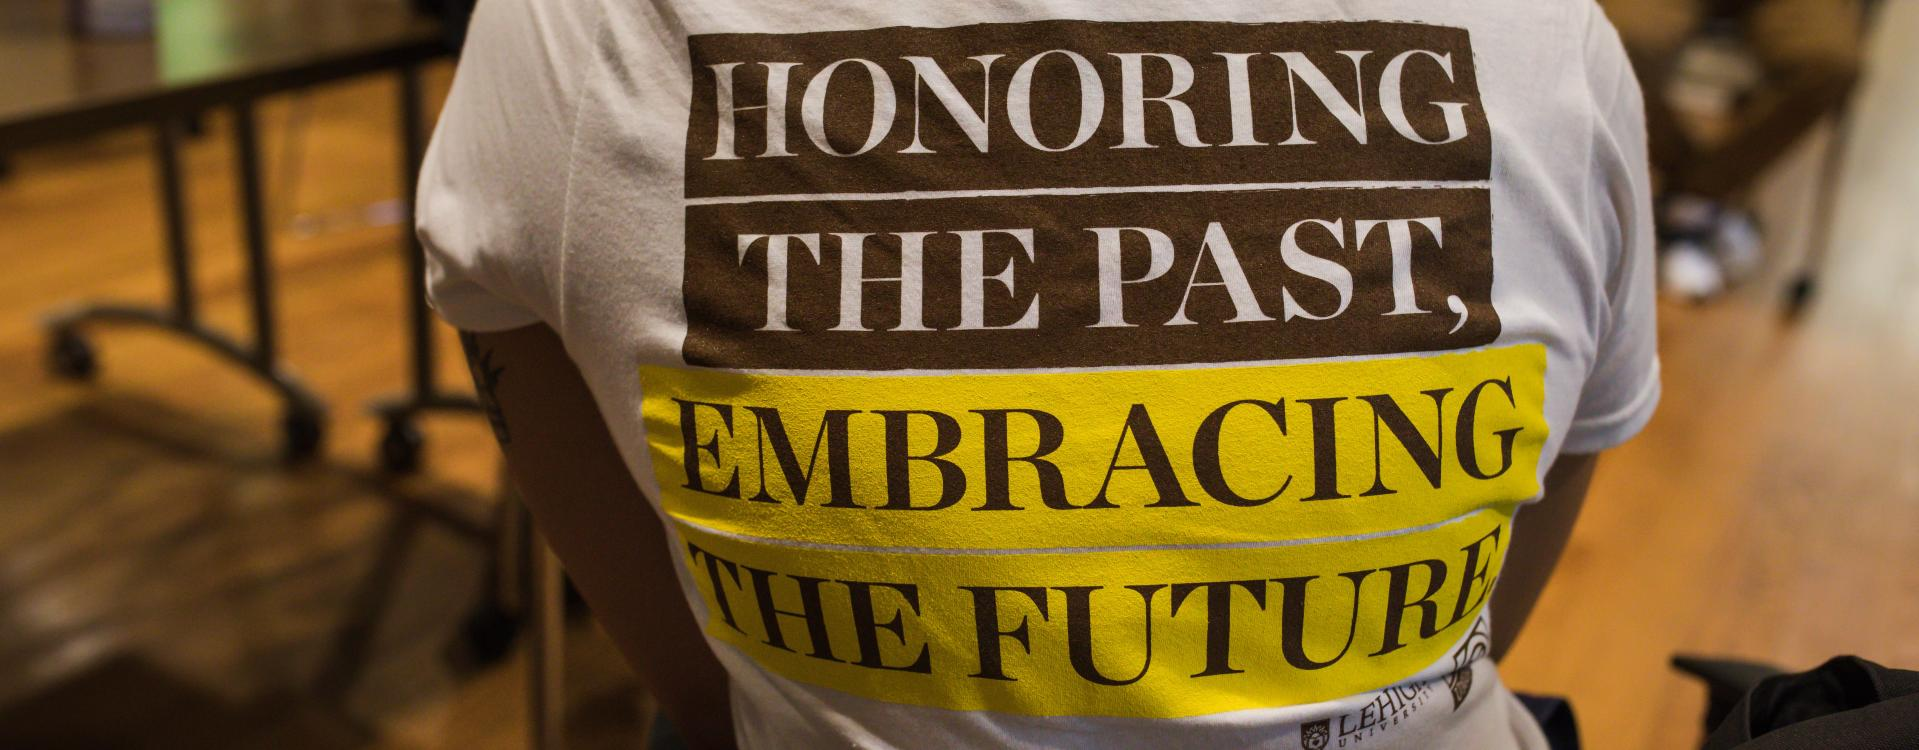 """""""Honoring the Past, Embracing the Future"""" on t-shirt"""